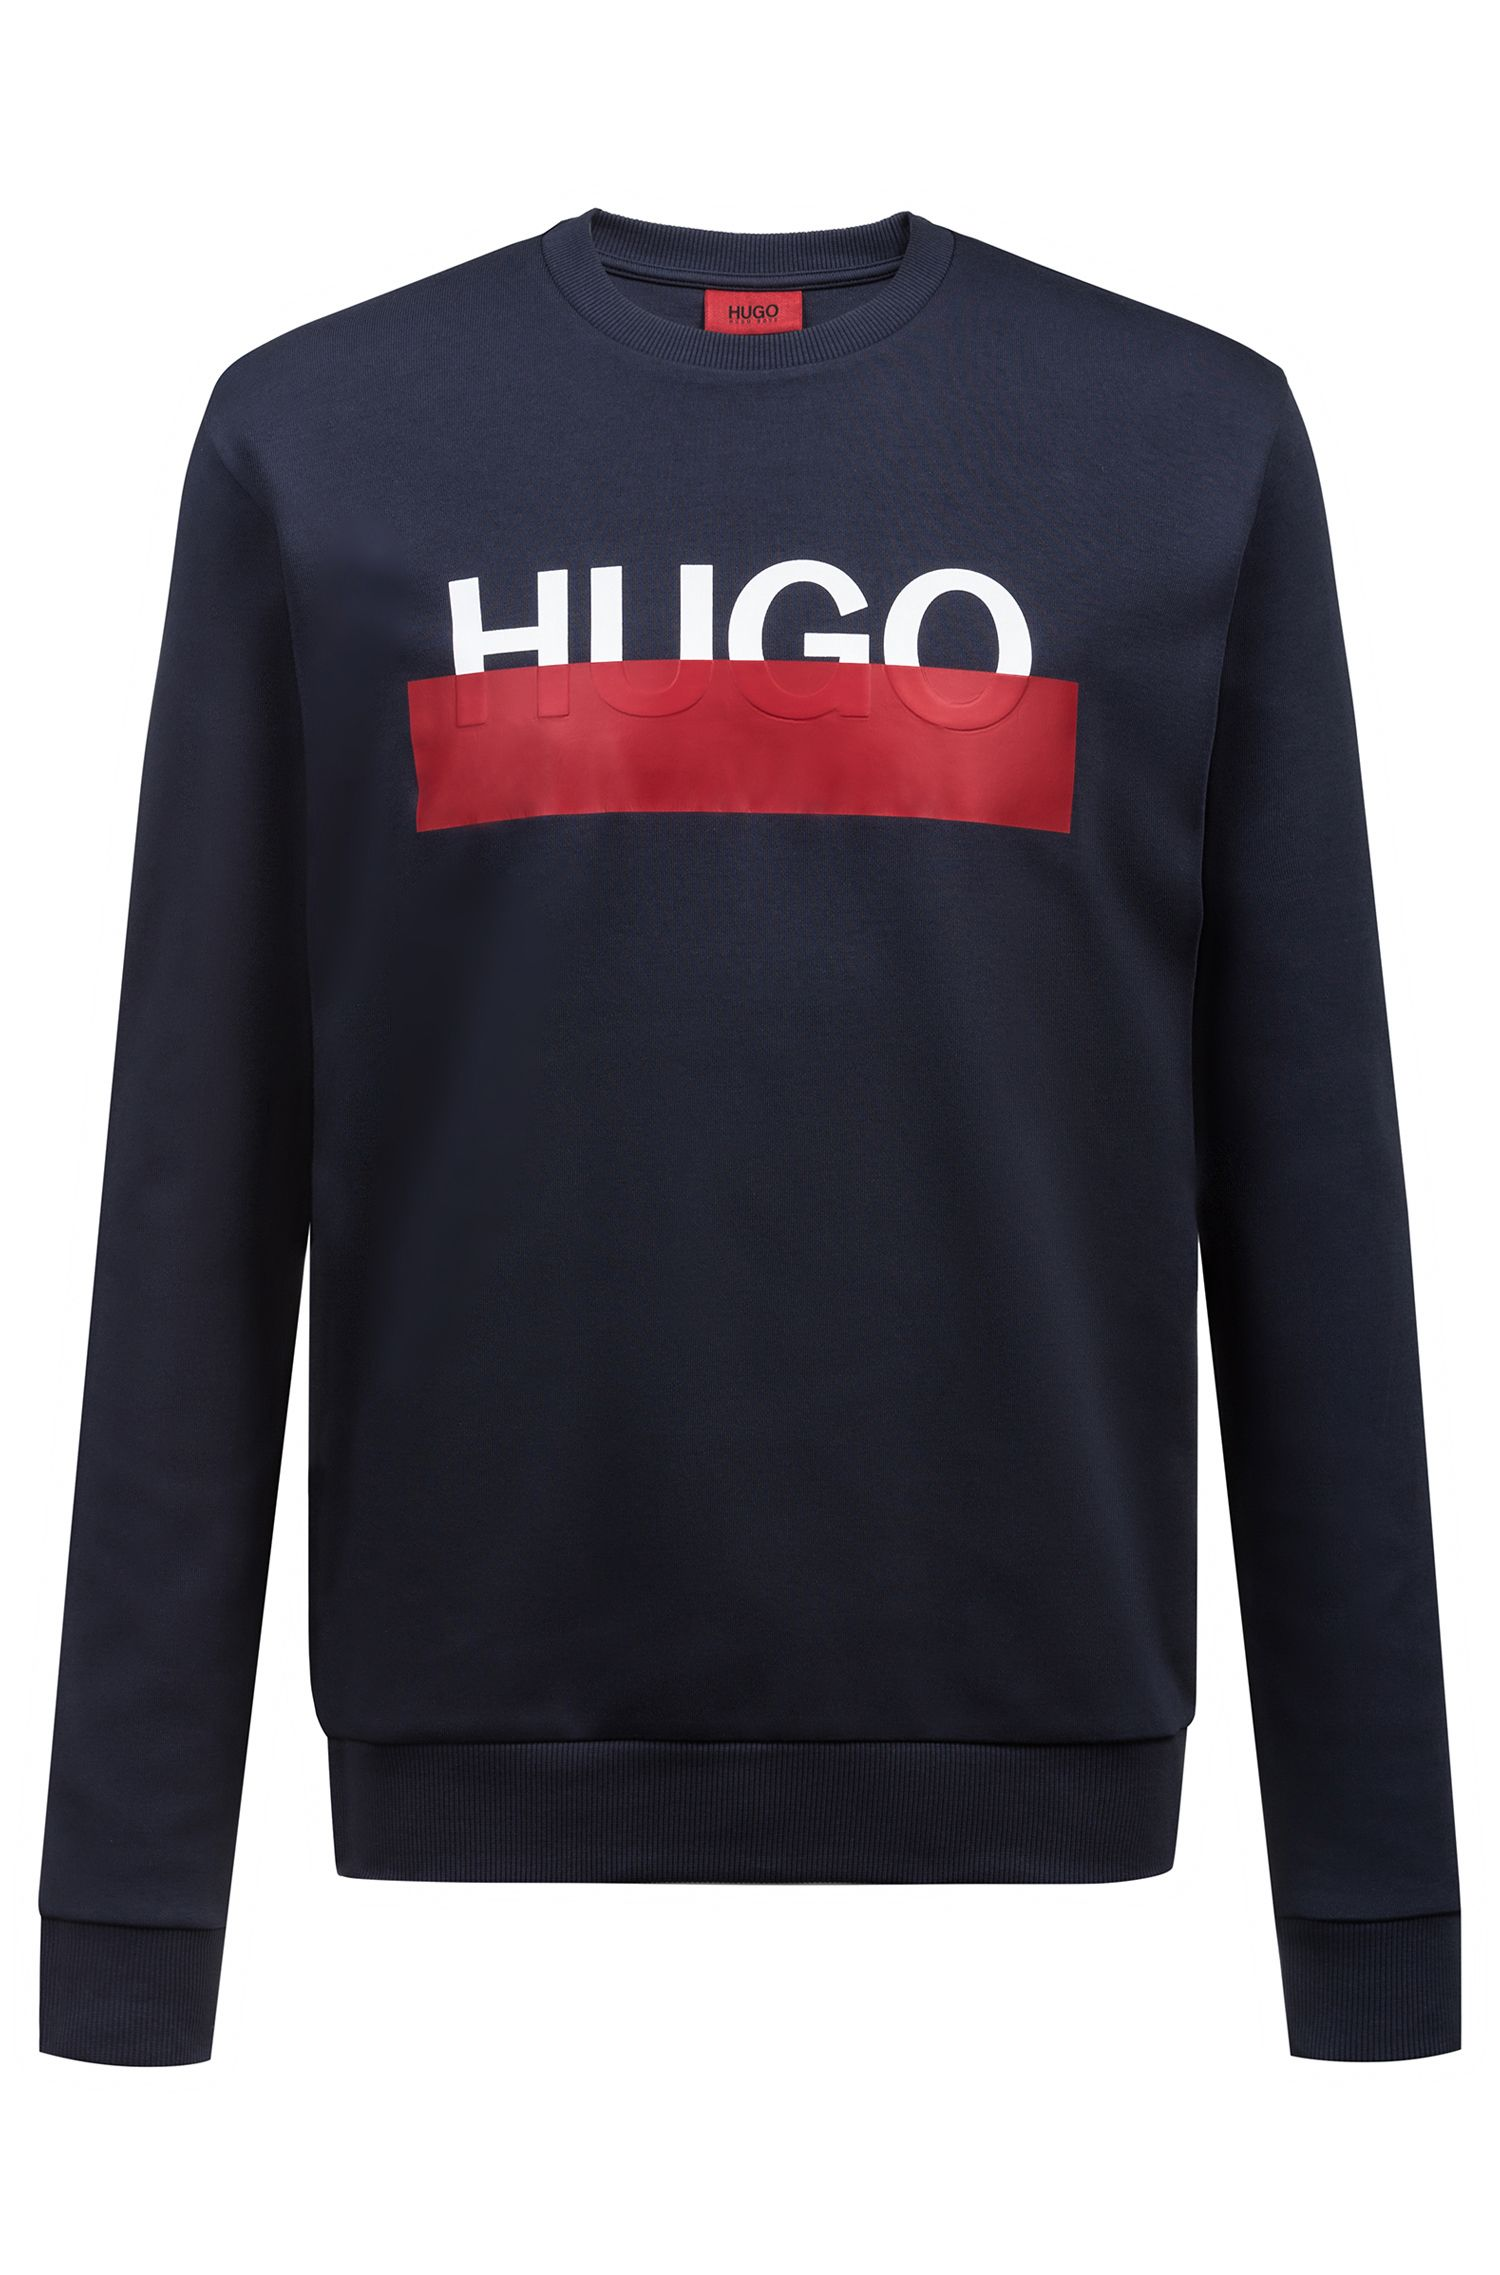 Interlock-cotton sweatshirt with partially concealed logo, Dark Blue